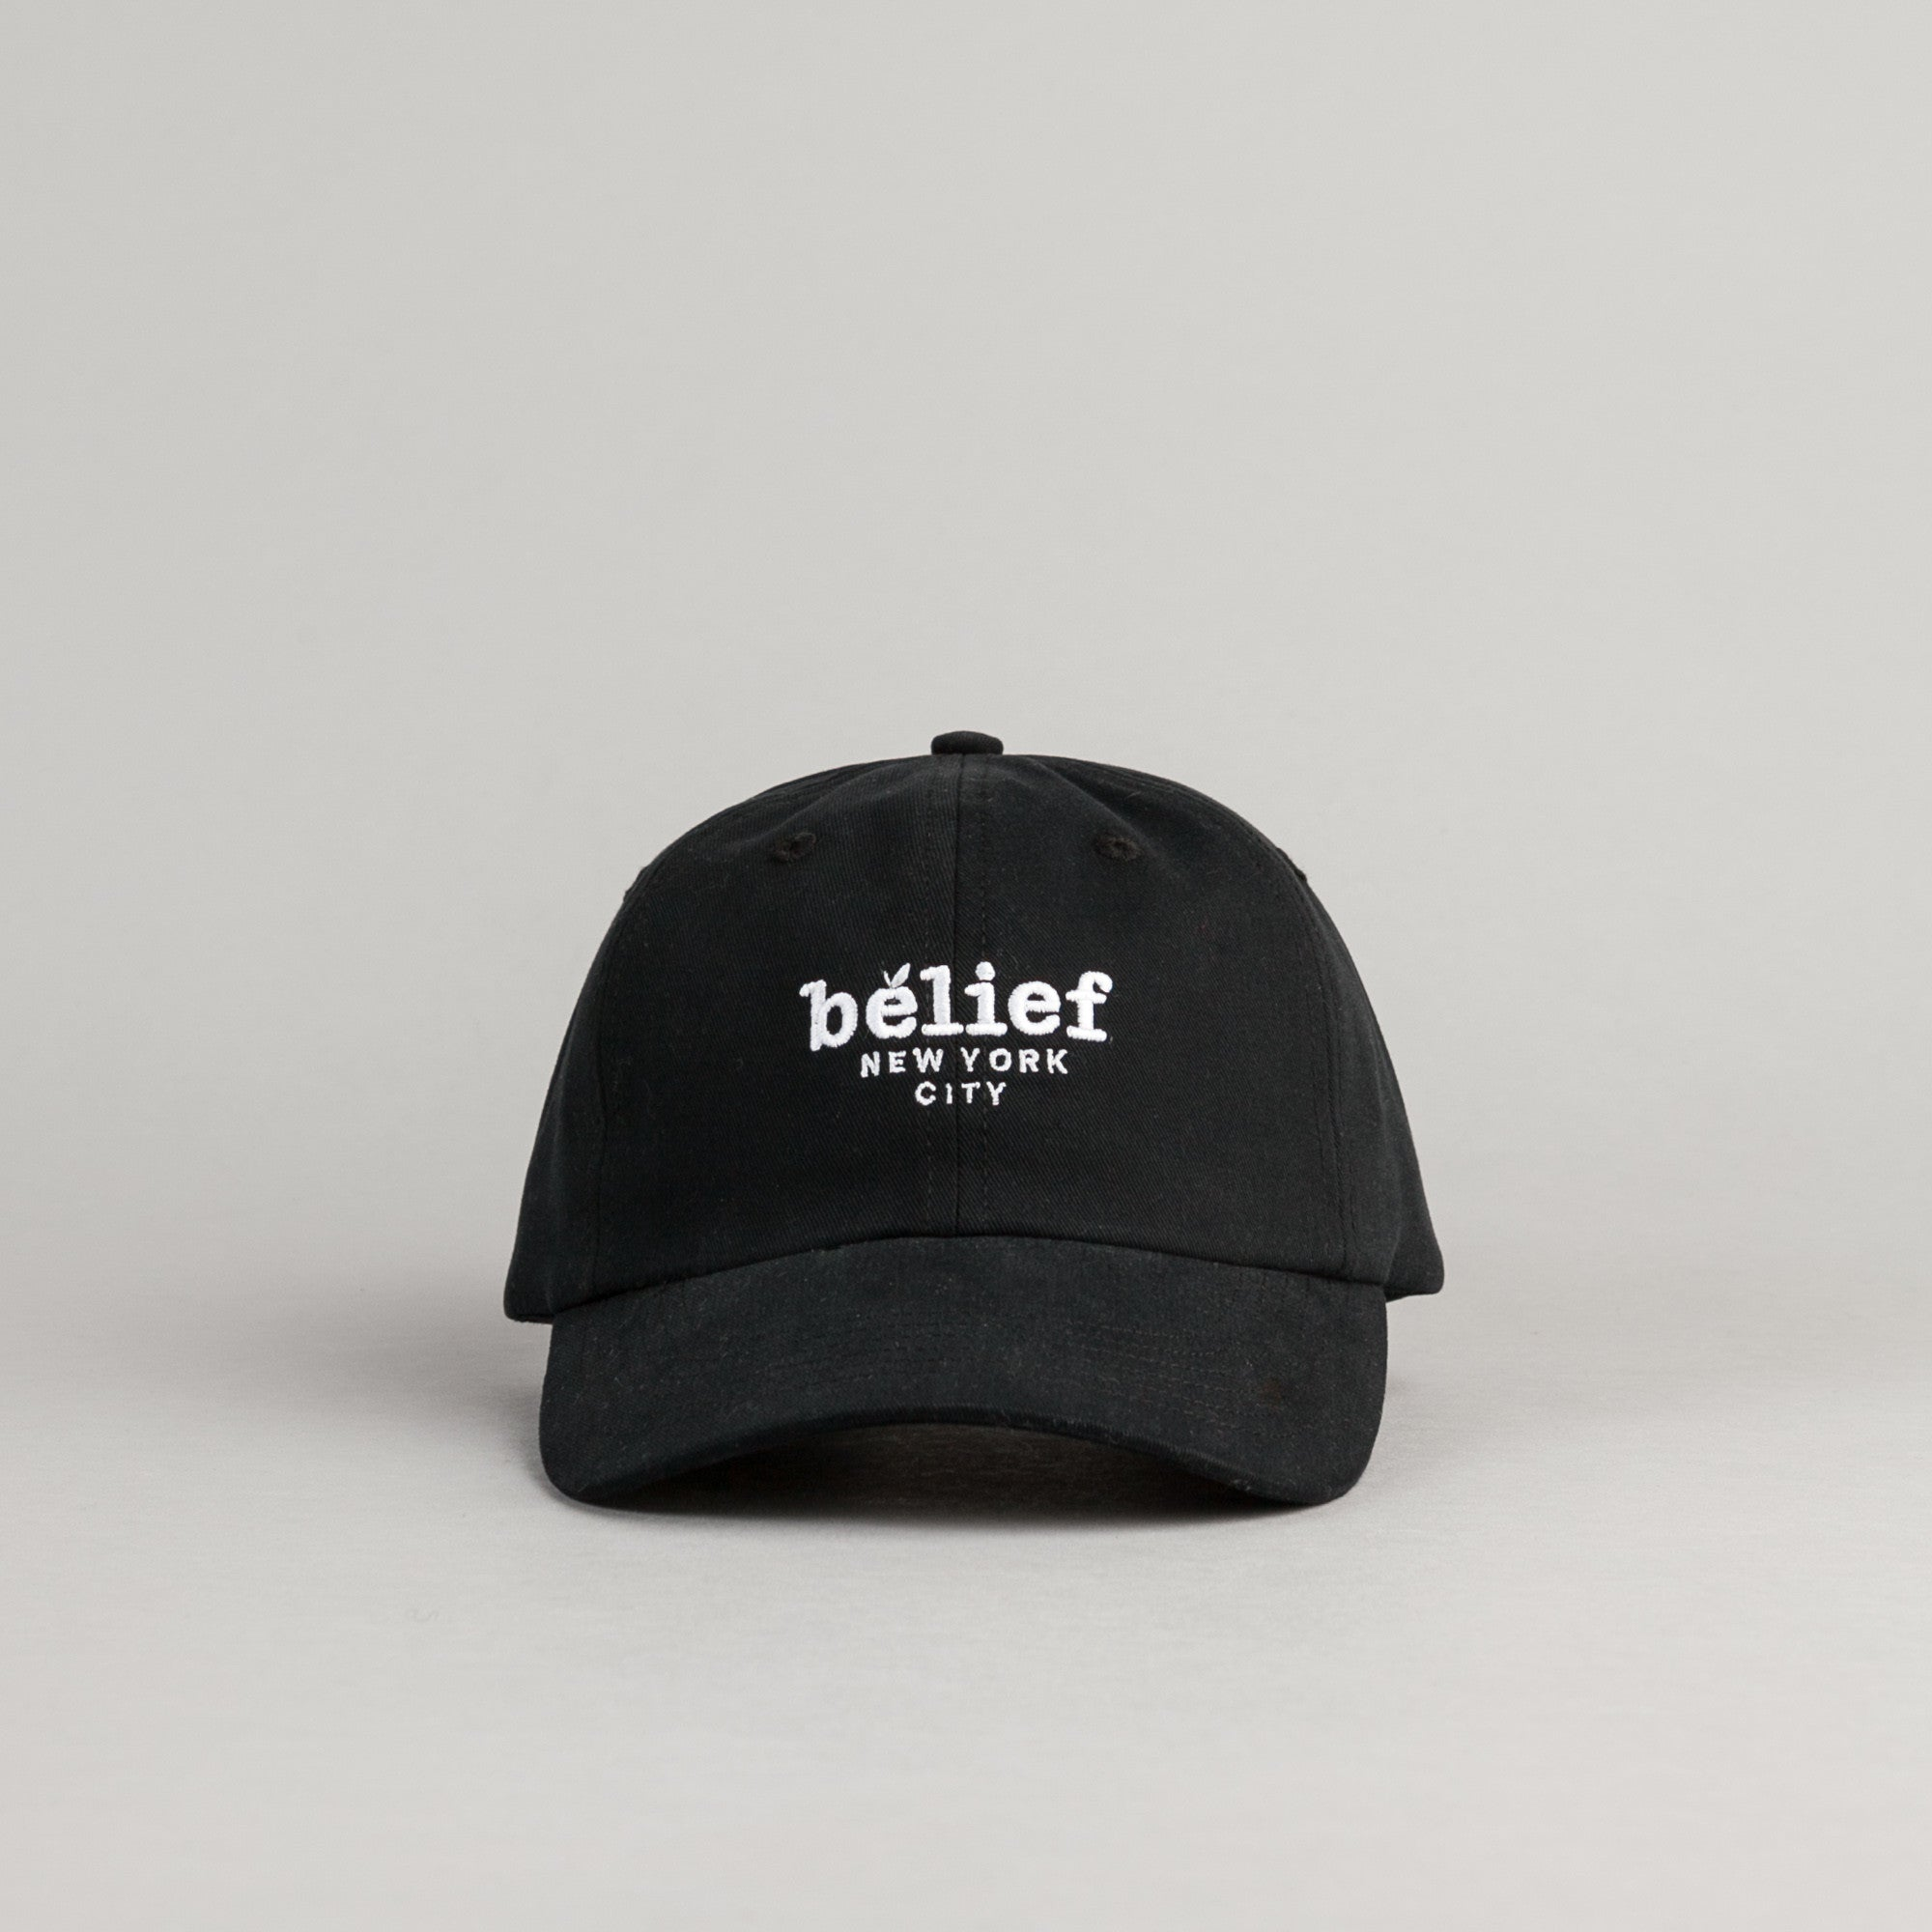 Belief Market Baseball Cap - Black